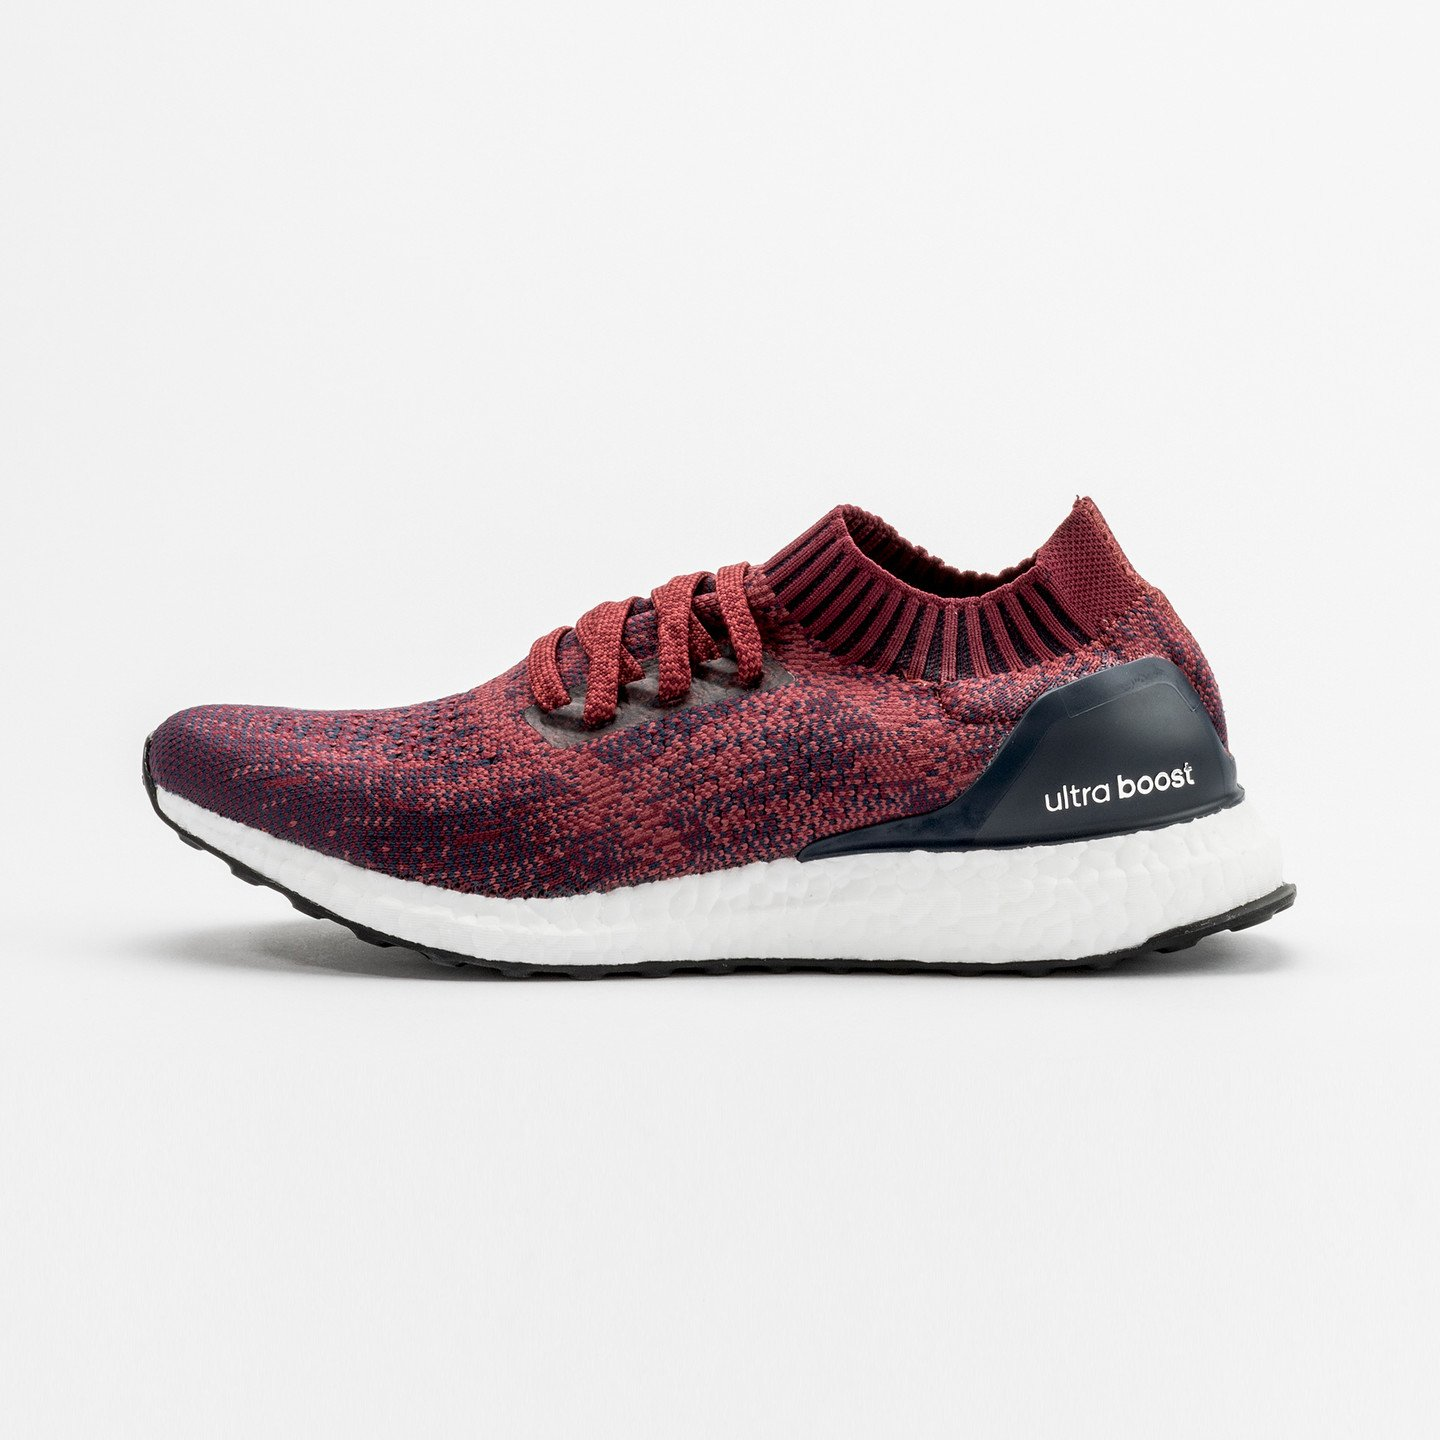 Adidas Ultra Boost Uncaged 'Burgundy' Mystery Red / Coll. Burgundy / Coll. Navy BA9617-42.66